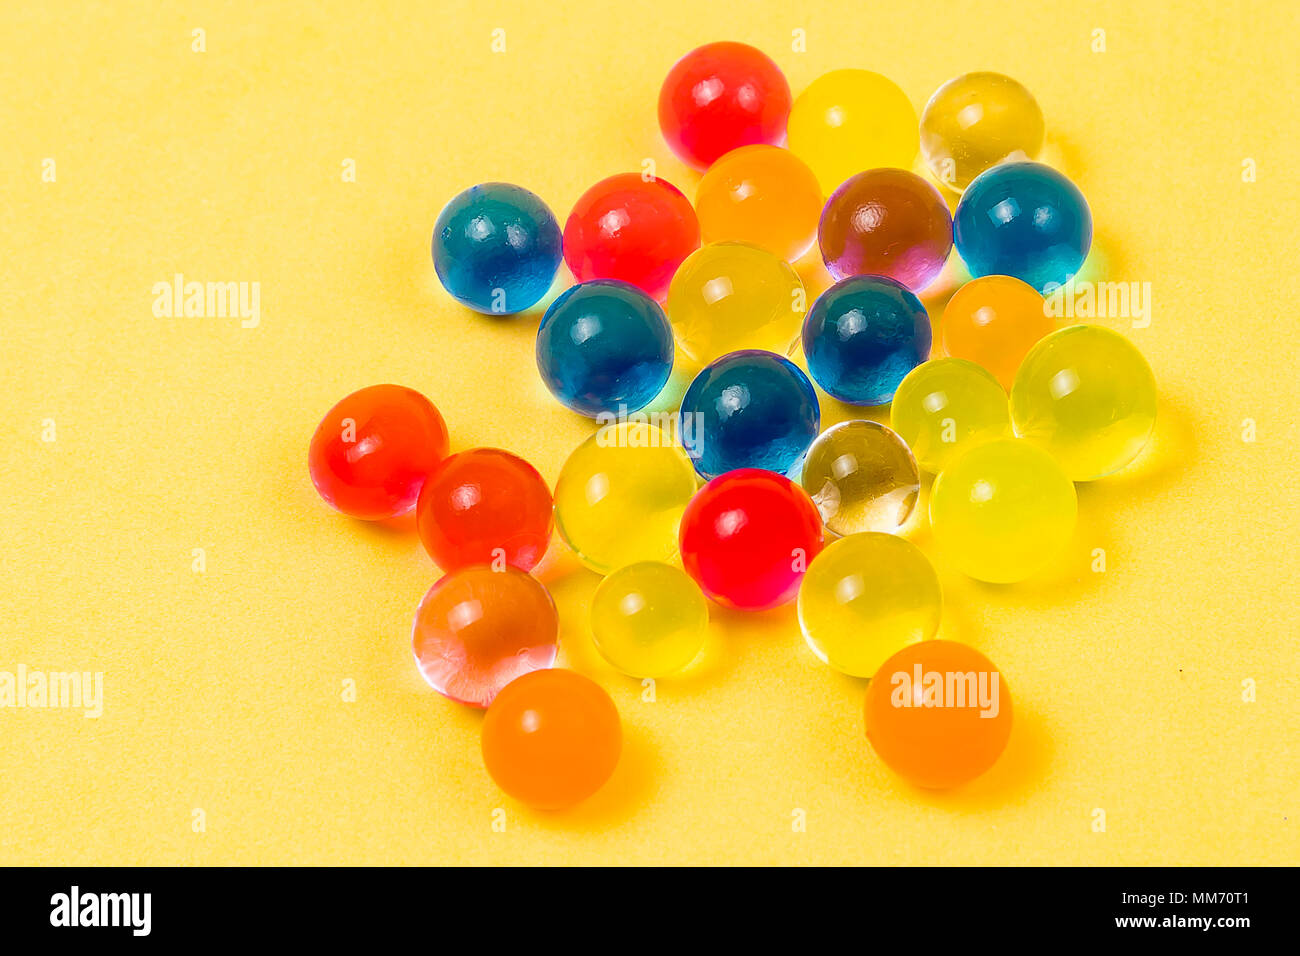 Gel multi-colored balls. Background made with scattered color gel balls - Stock Image